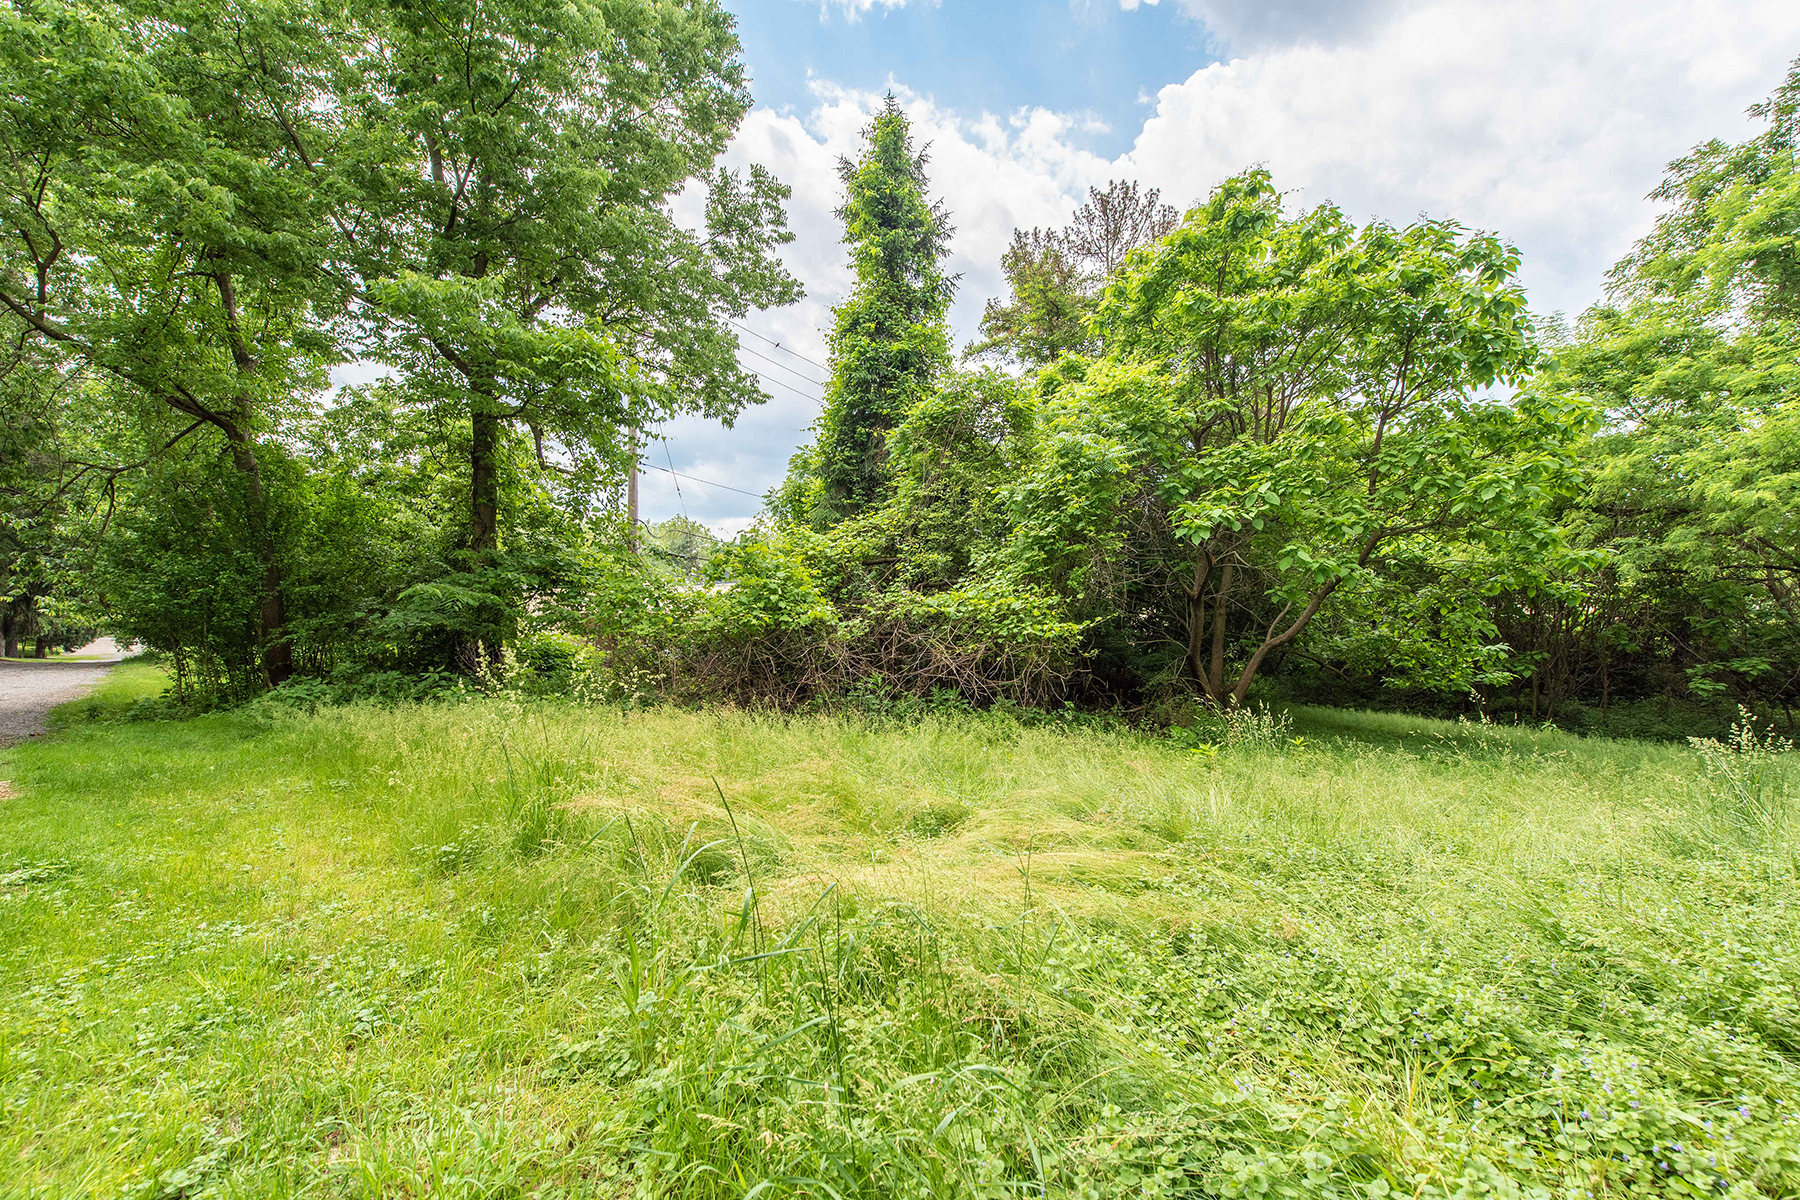 Land for Sale at Residential Lot in Quaker Valley School District 0 Beaver Road Leetsdale, Pennsylvania 15015 United States